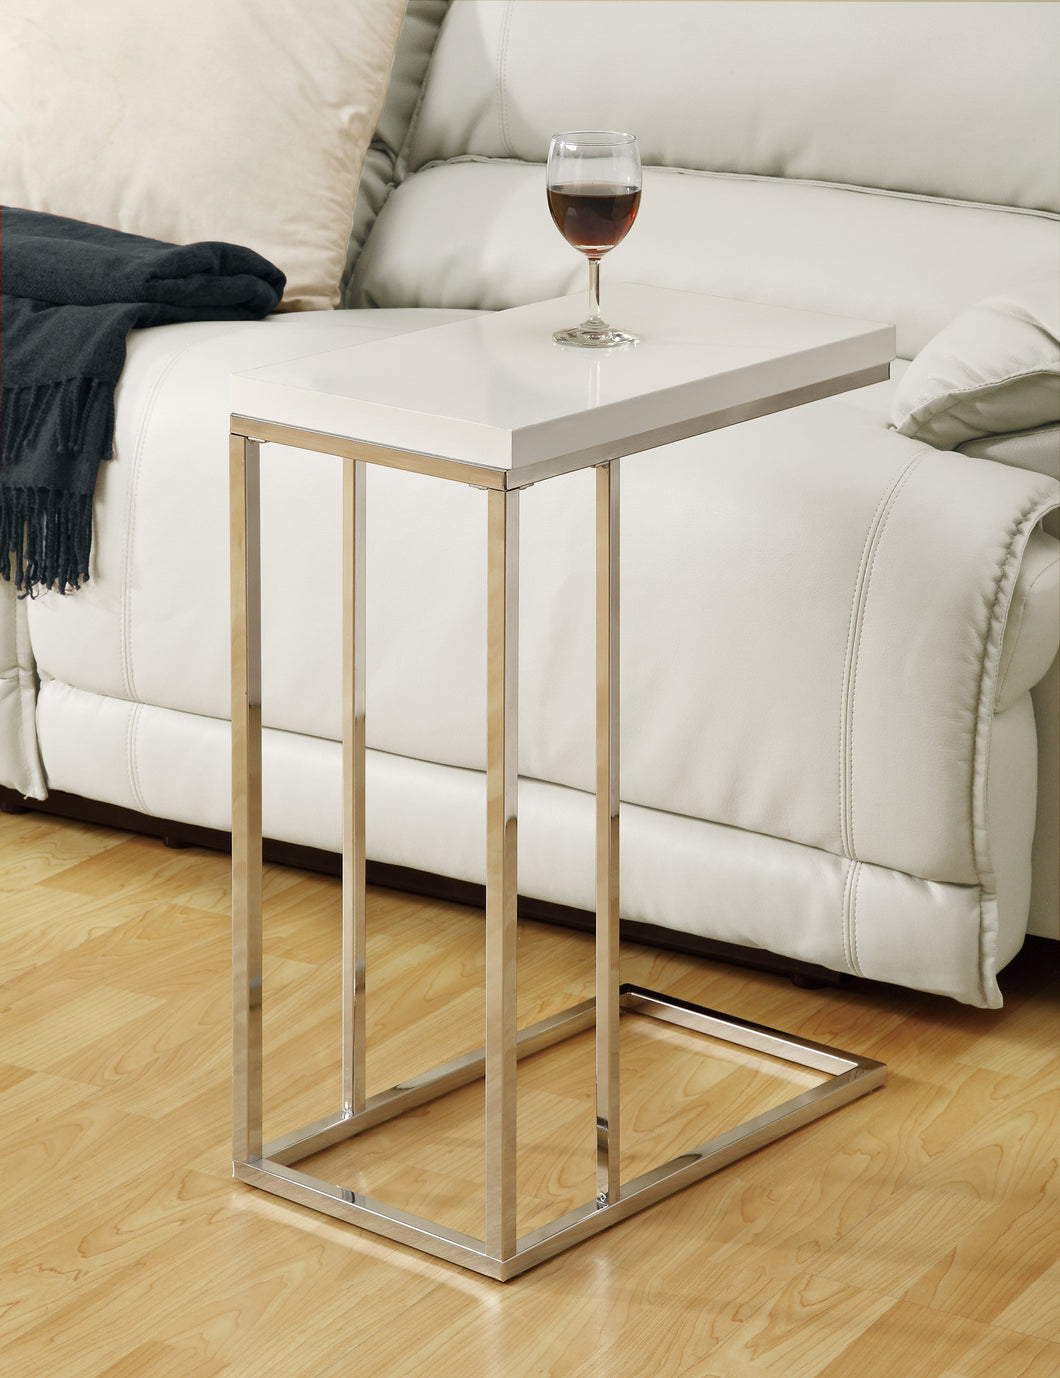 Candace & Basil Snack Table - Glossy White With Chrome Metal